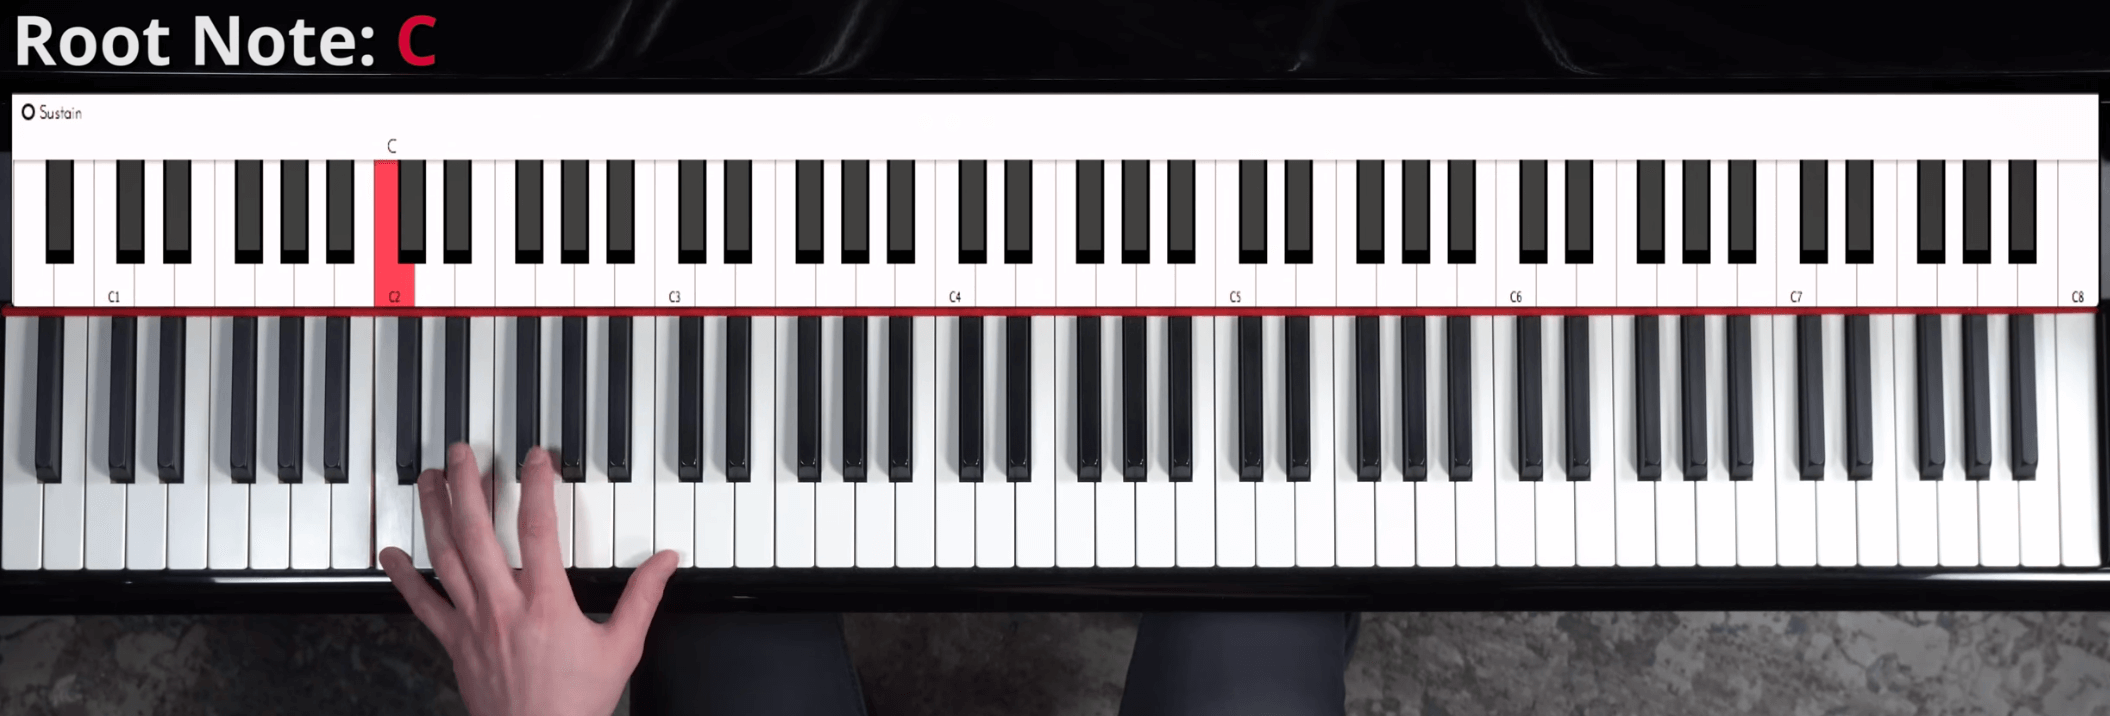 Stride piano root note